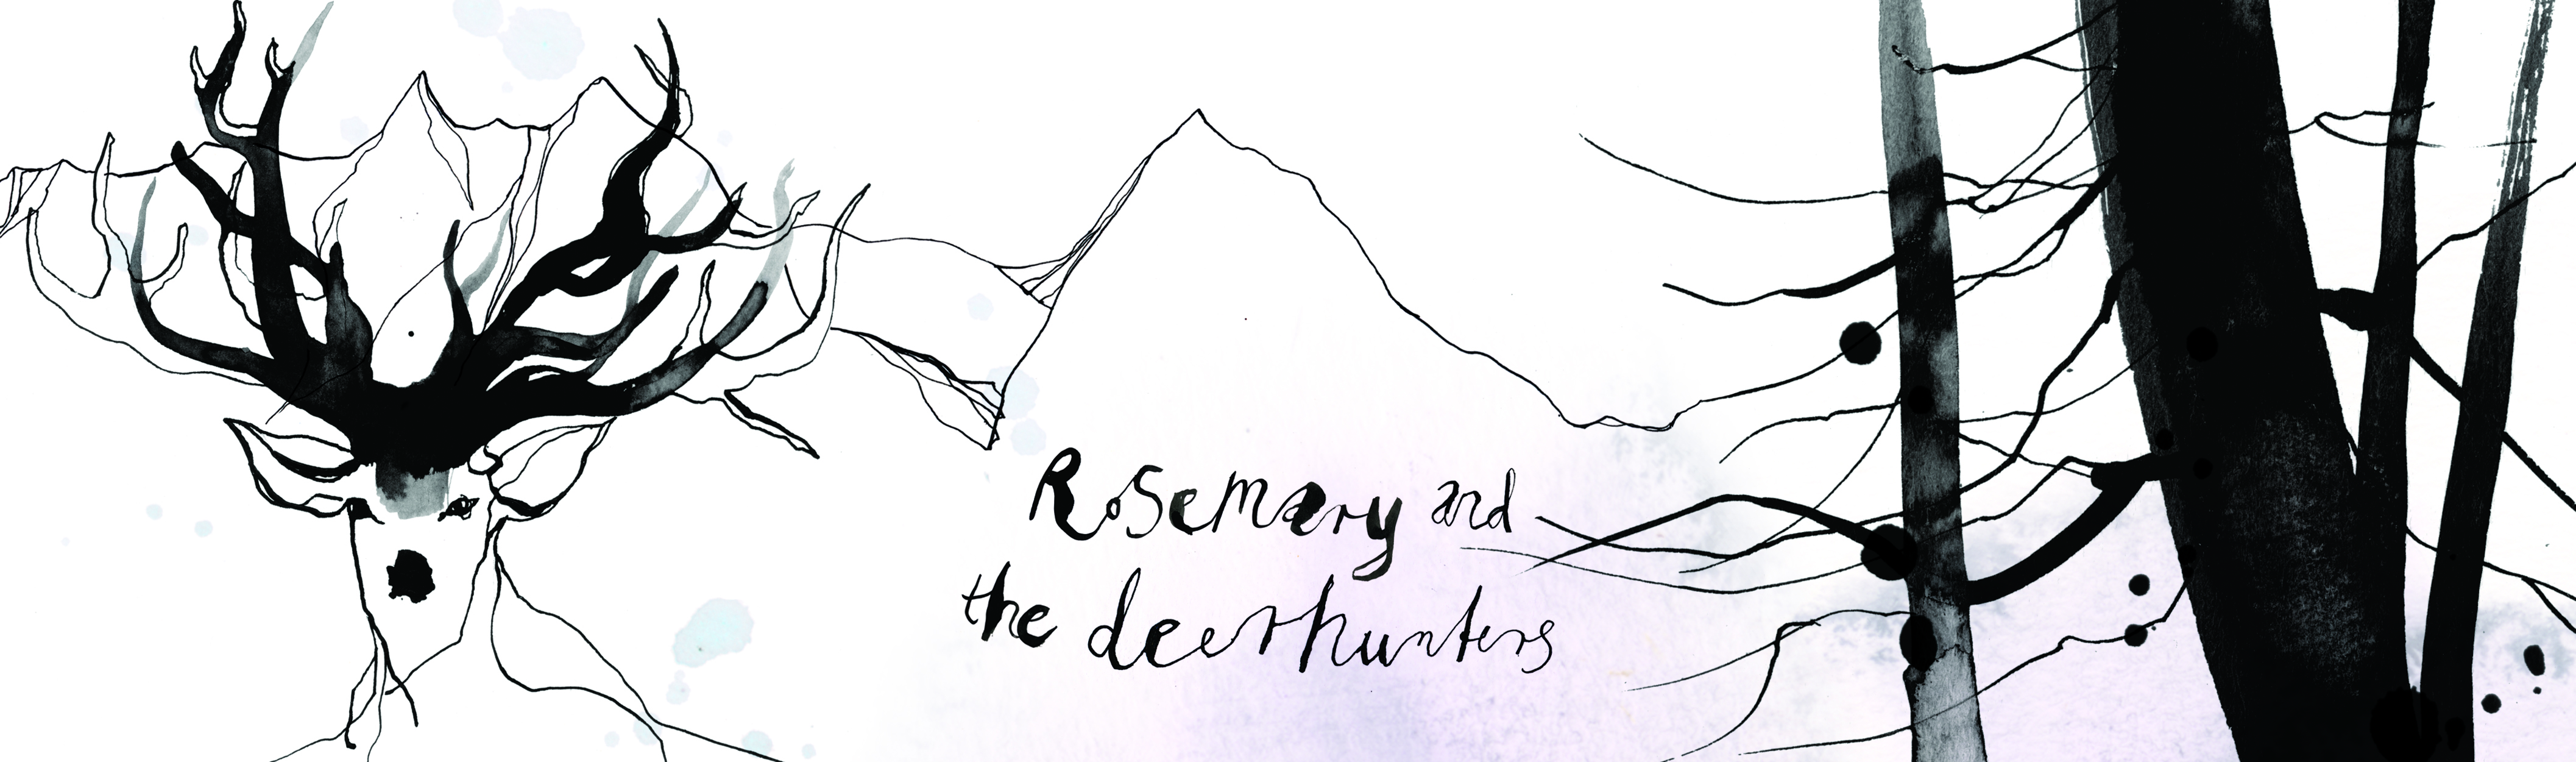 Rosemary and the deerhunters - The art of eating and drinking with both hands